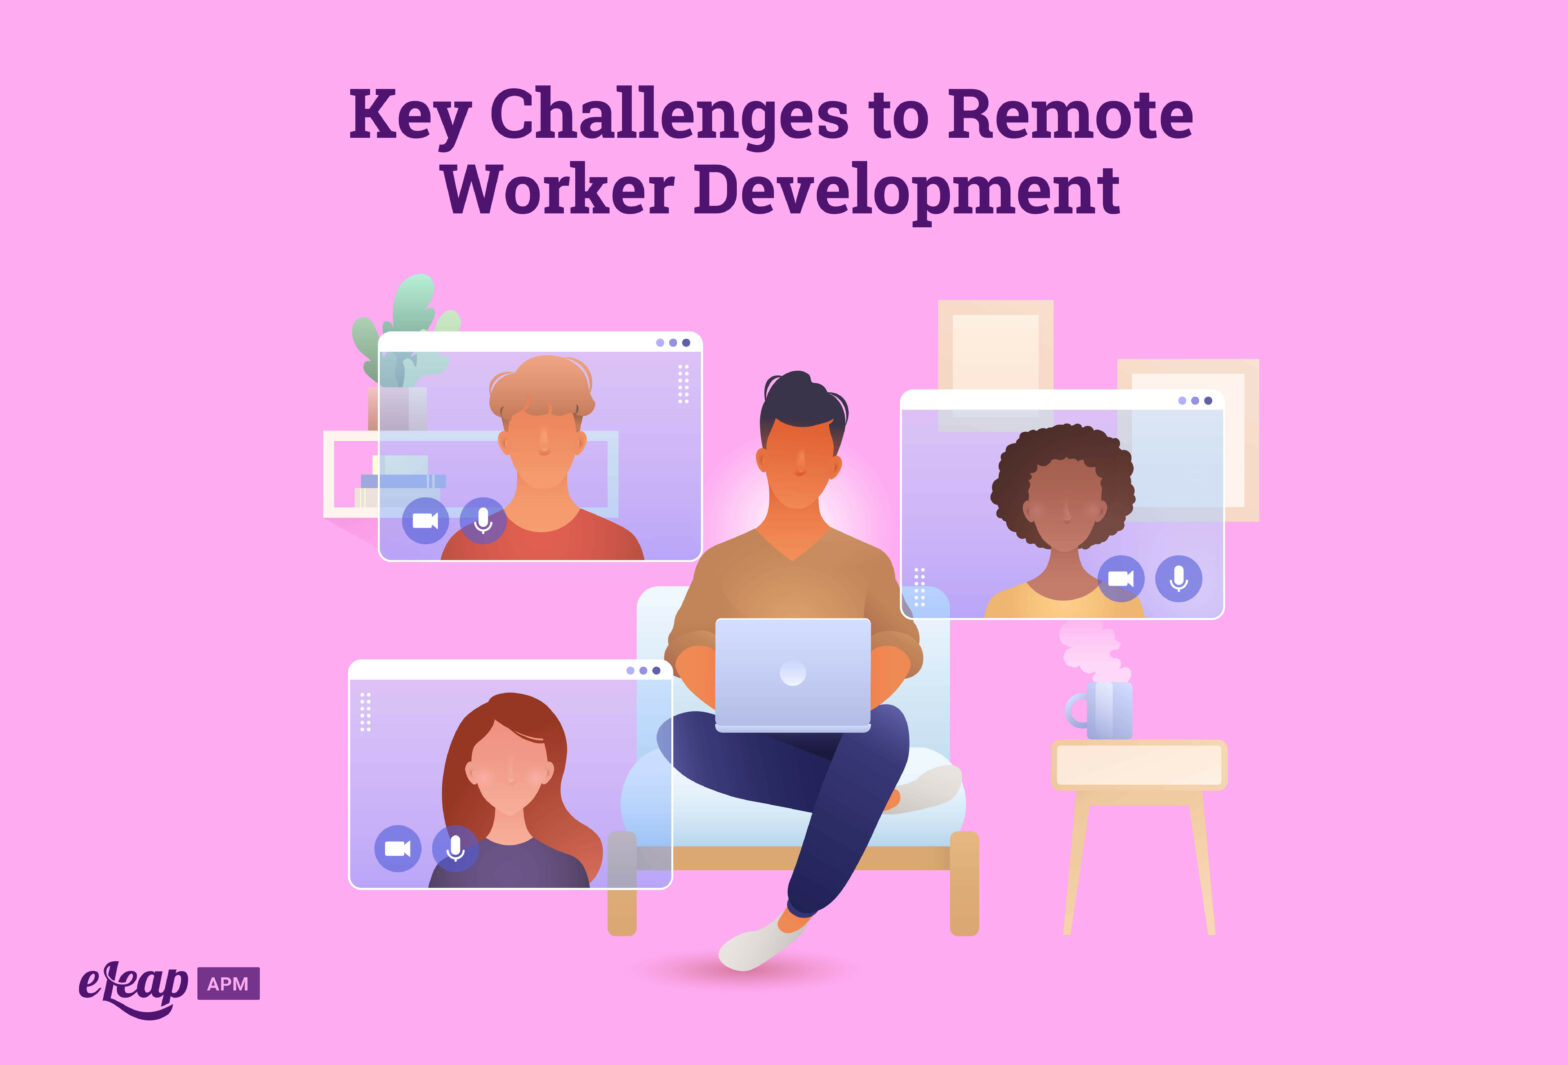 Key Challenges to Remote Worker Development